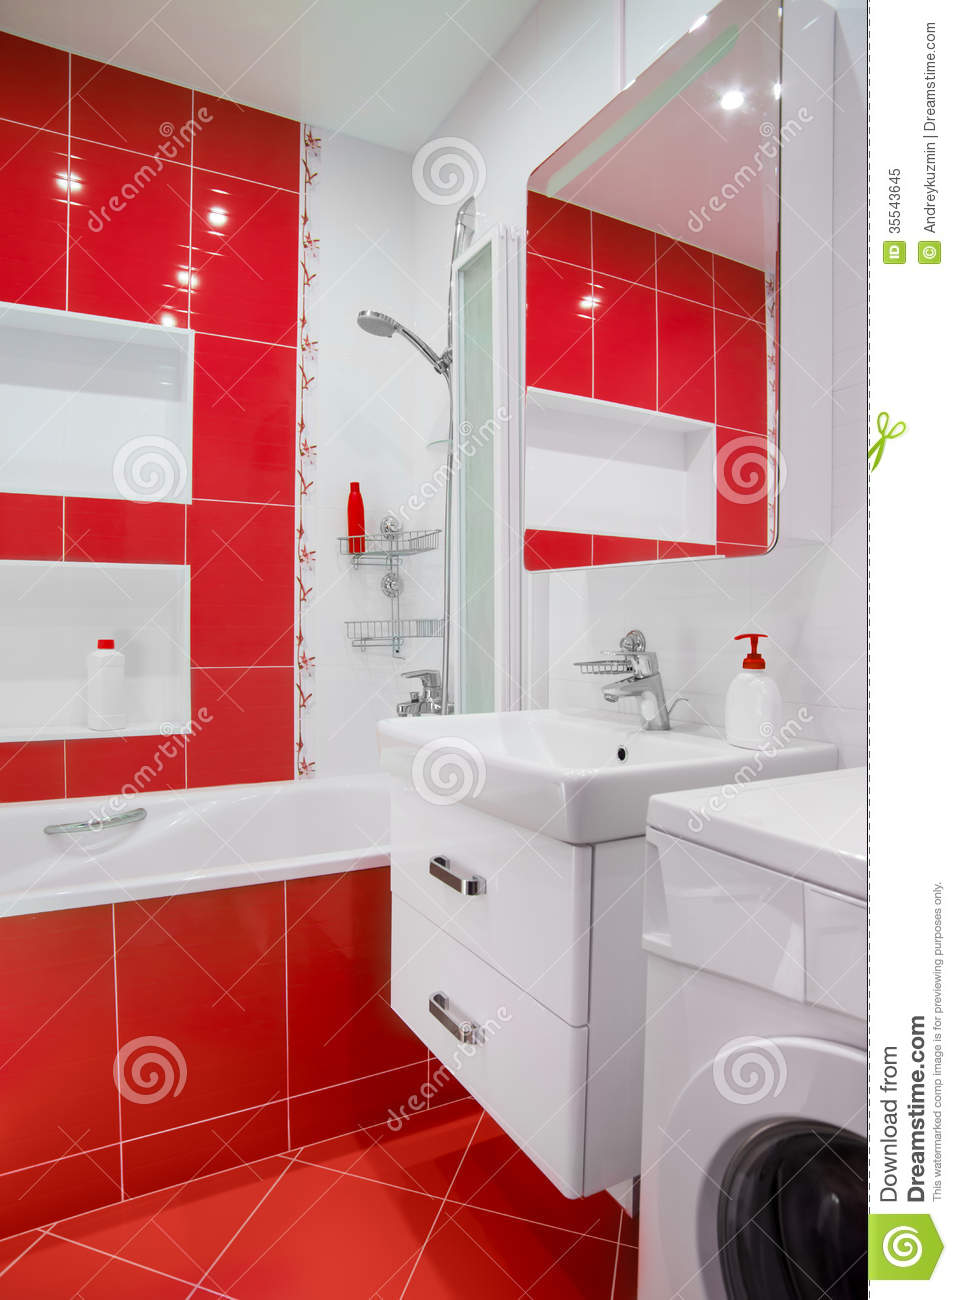 Modern Red Bathroom Interior With Mirror And Showe Stock